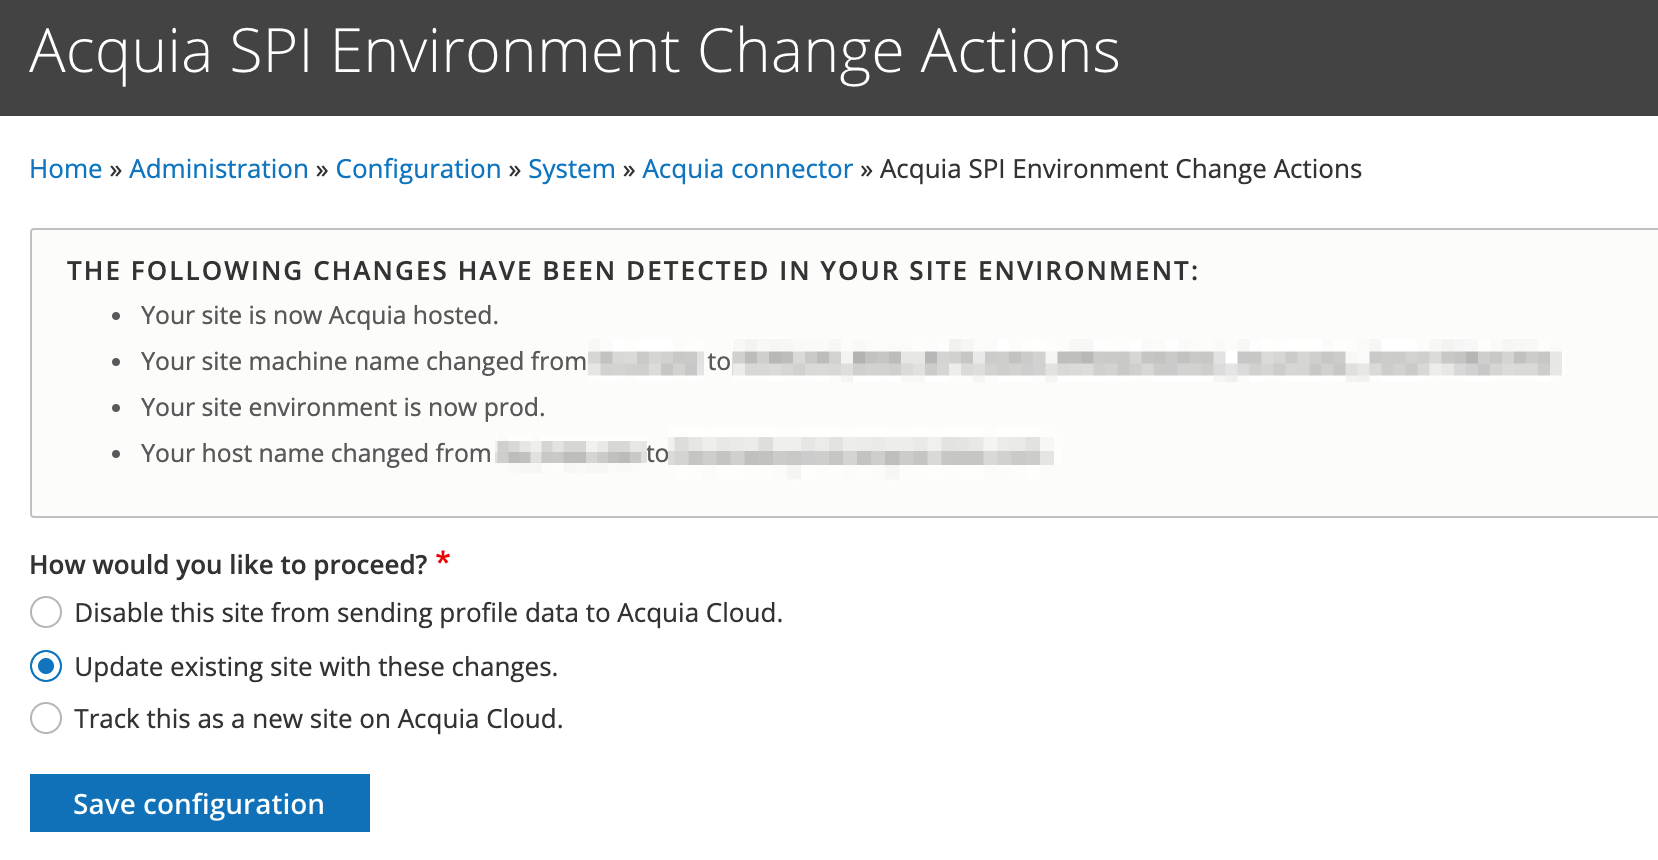 Acquia SPI Environment Change Actions